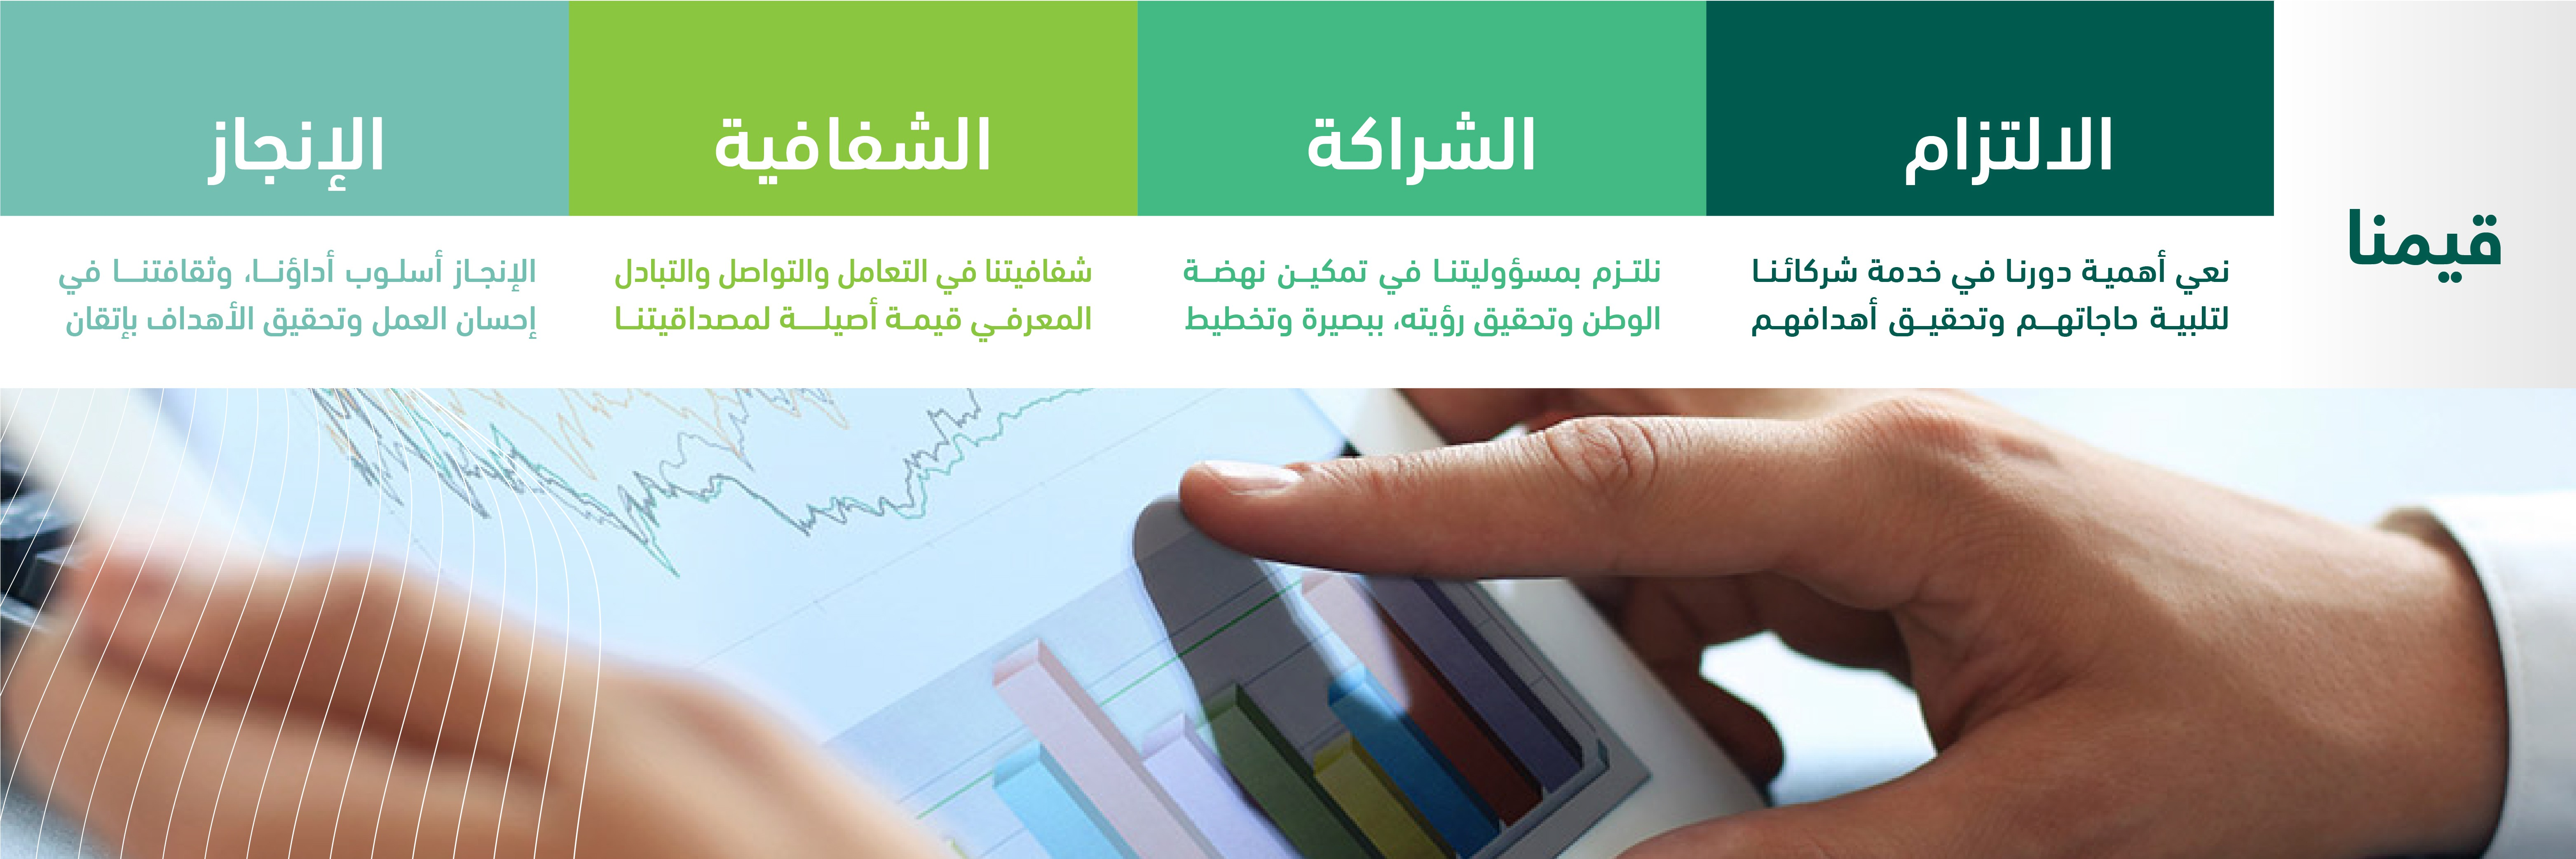 Ministry of Finance, Saudi Arabia | LinkedIn